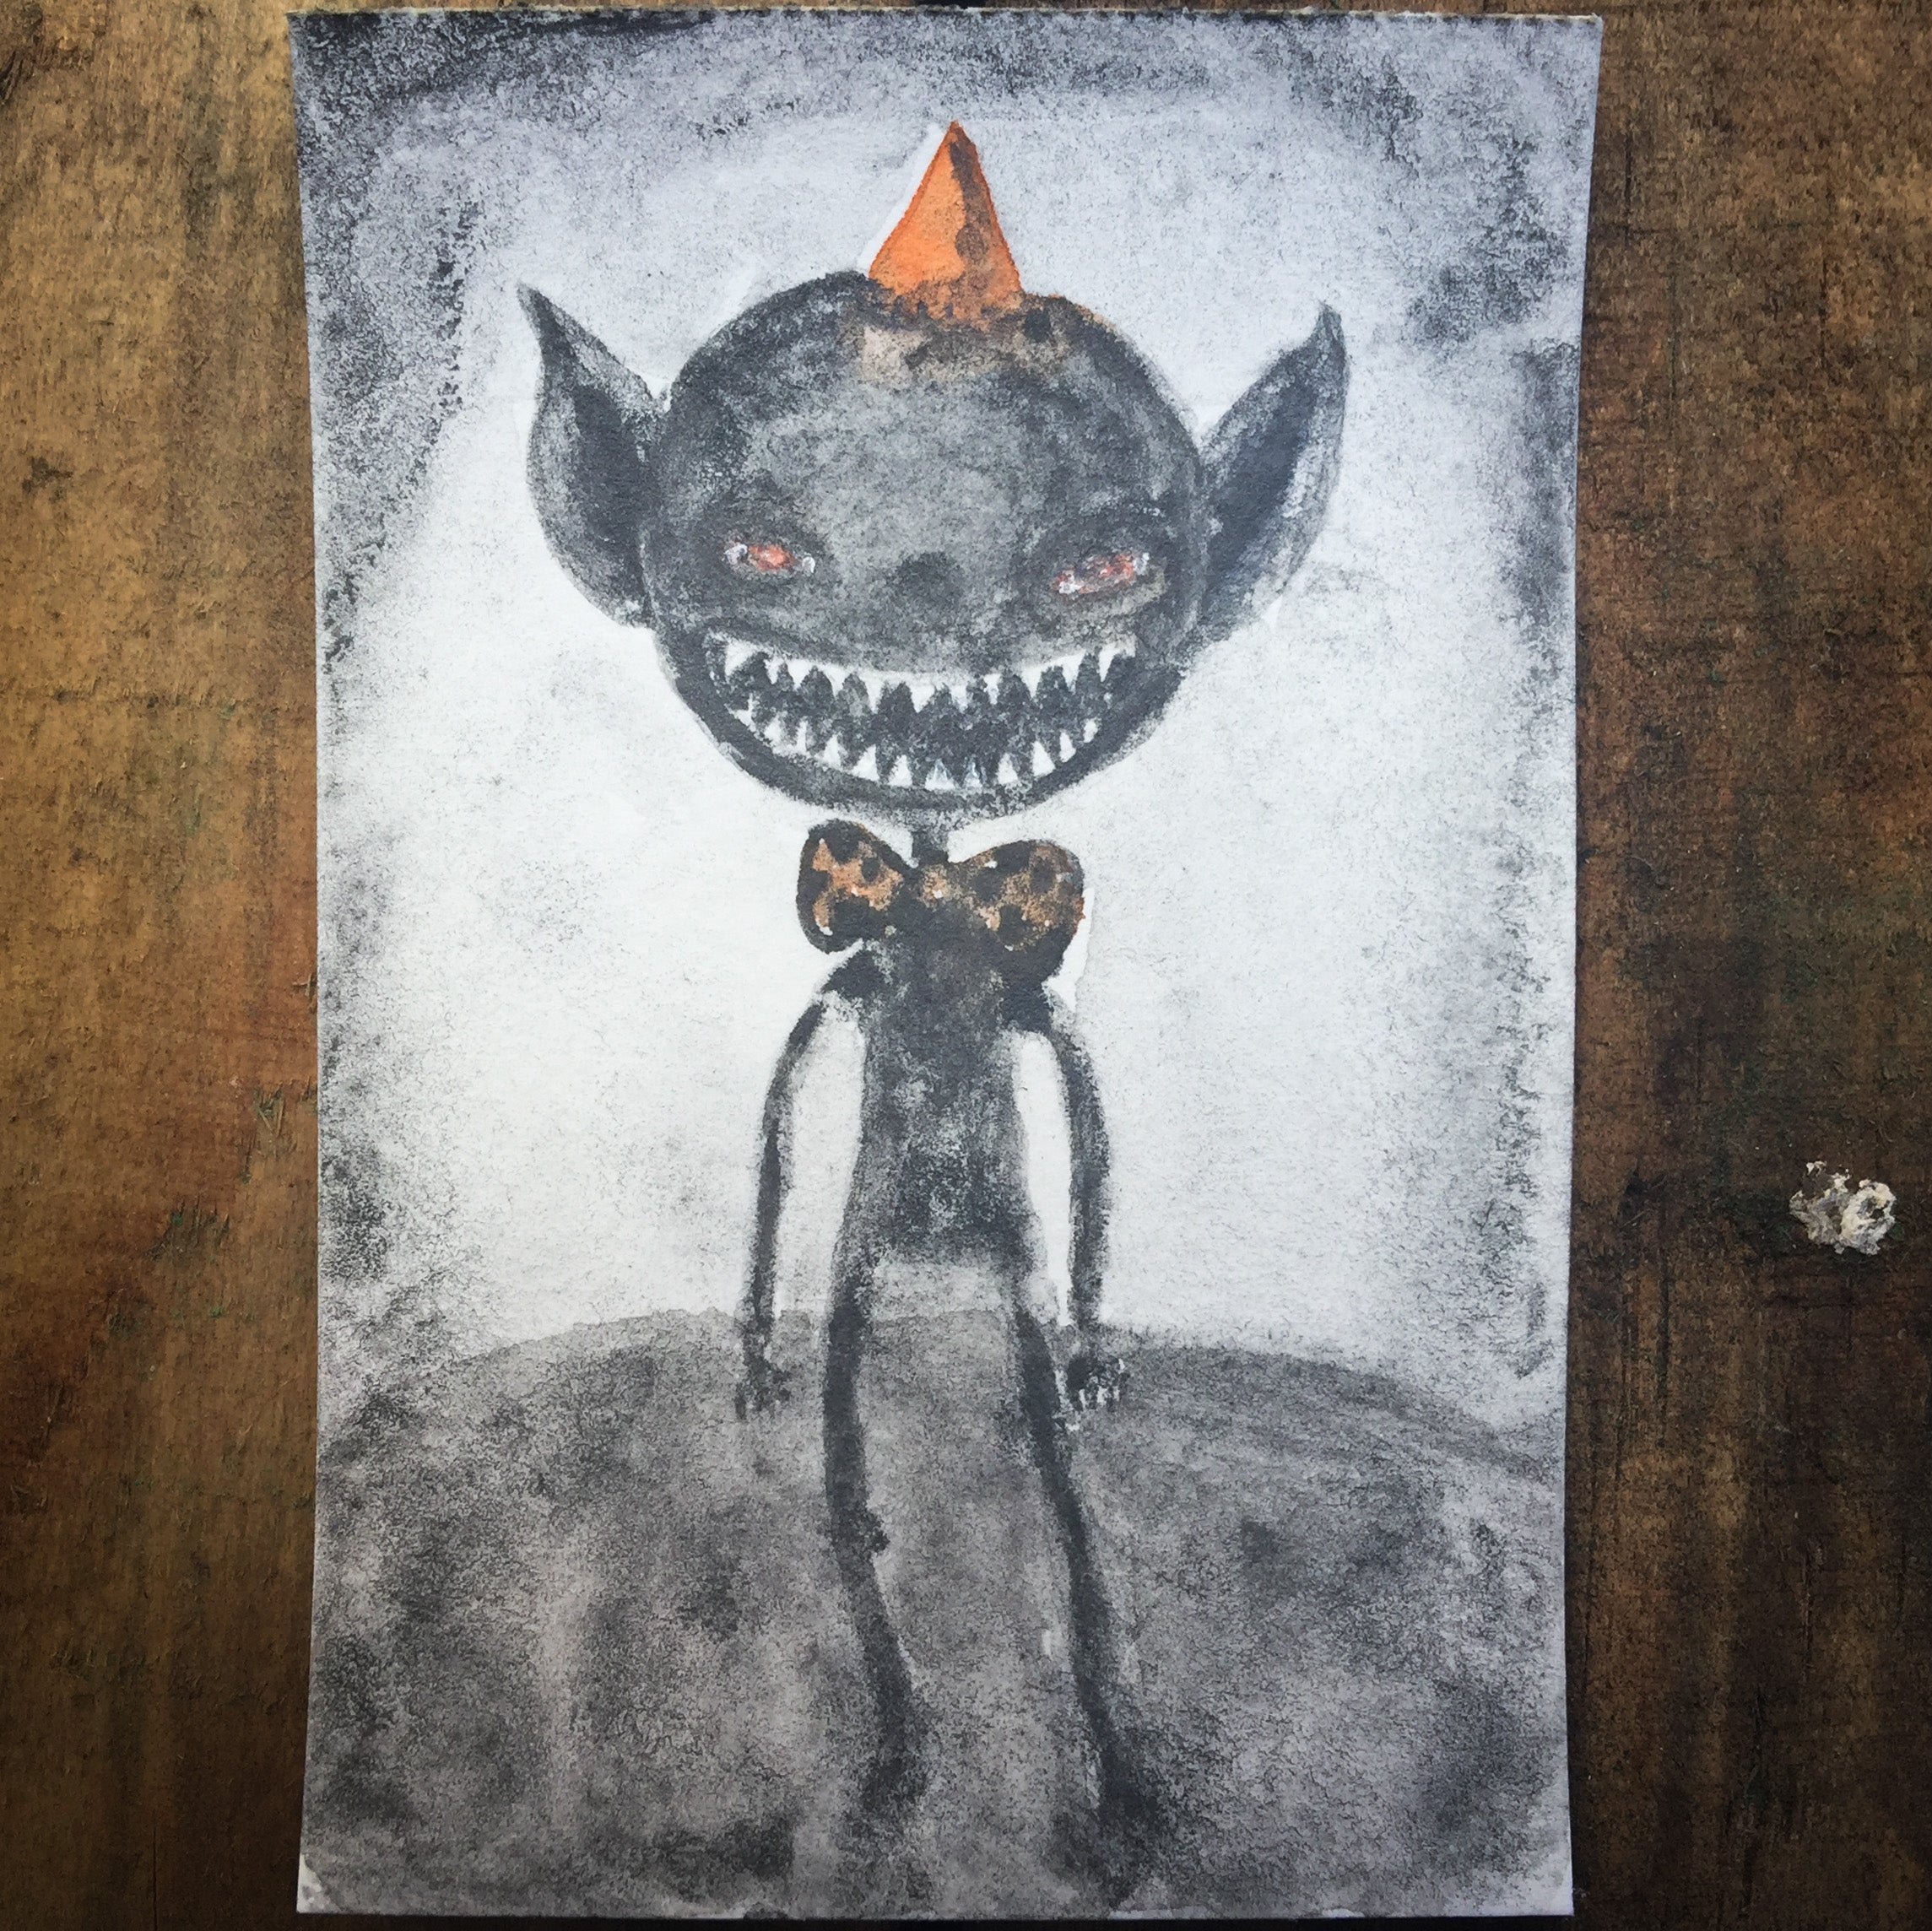 THE GOBLIN, Original Art by Danita Art